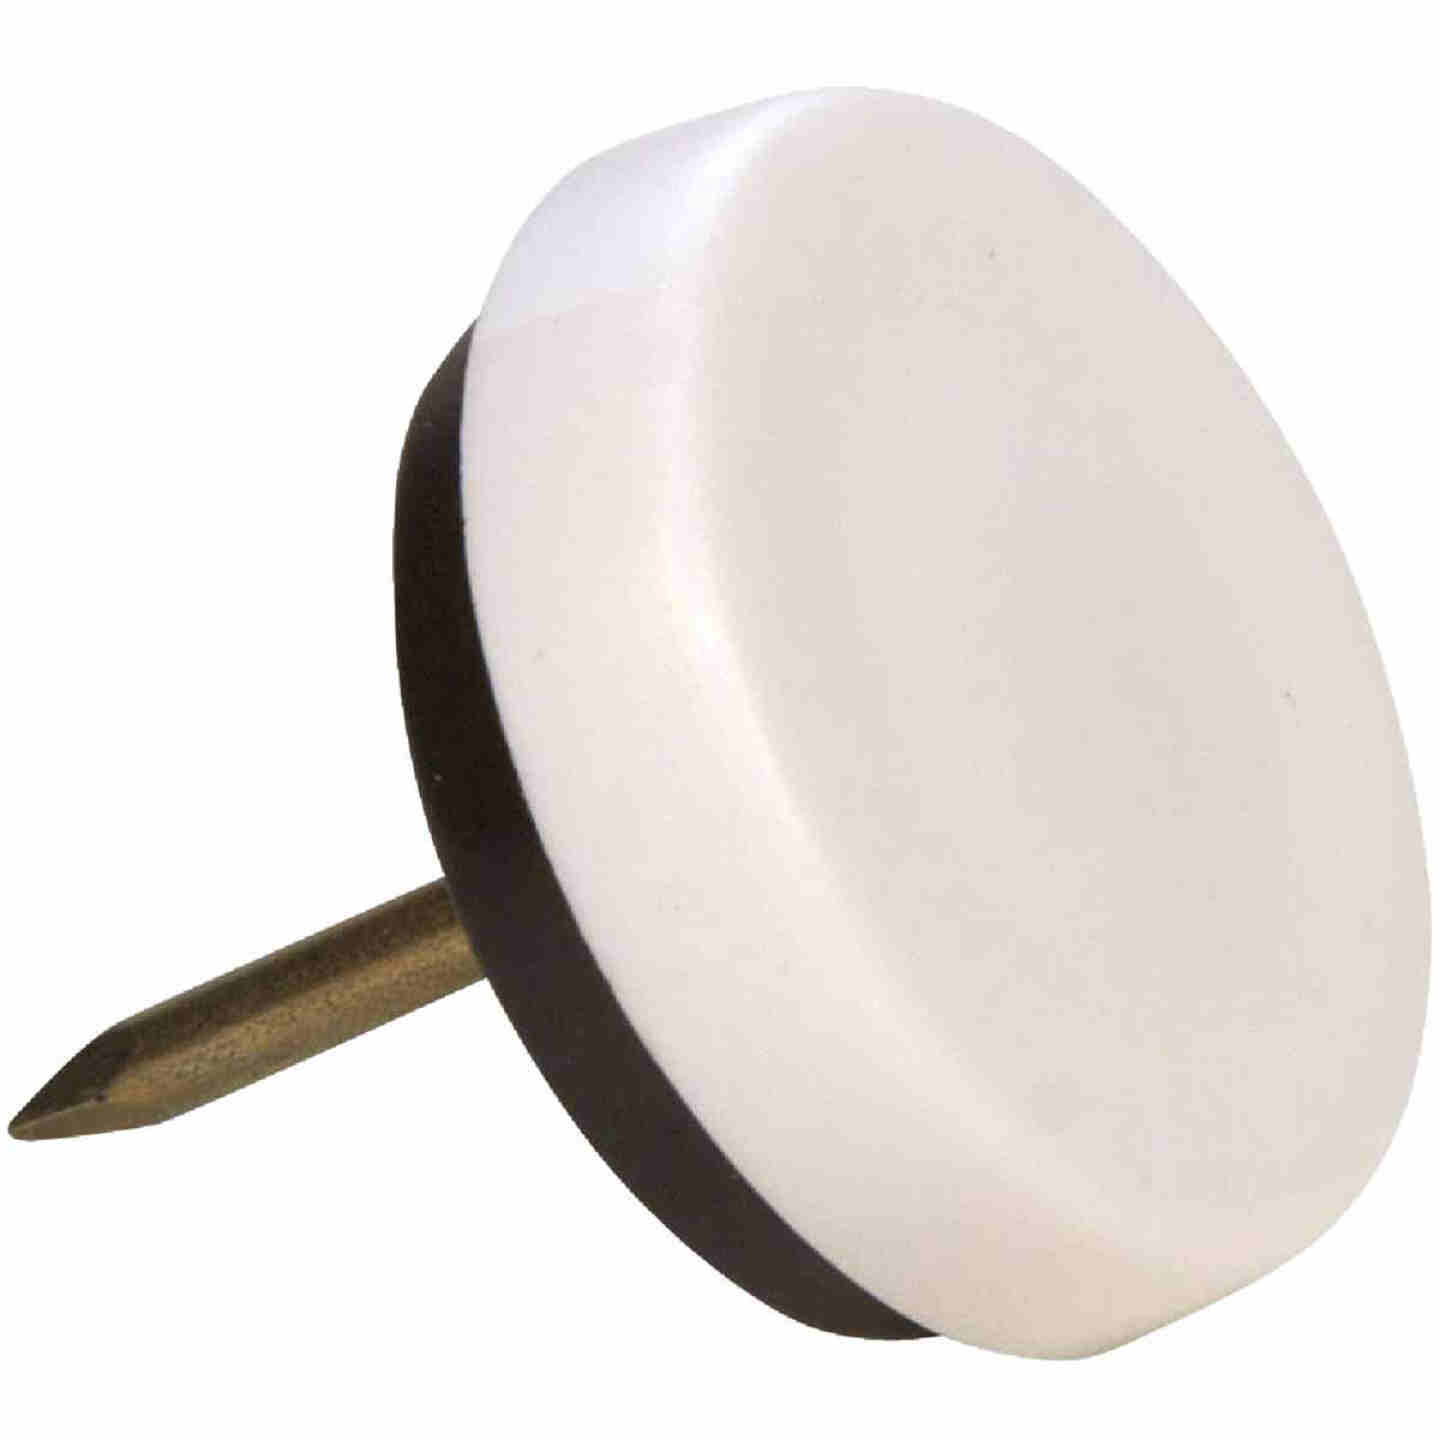 Magic Sliders 1-1/8 In. Round Nail on Furniture Glide,(4-Pack) Image 1